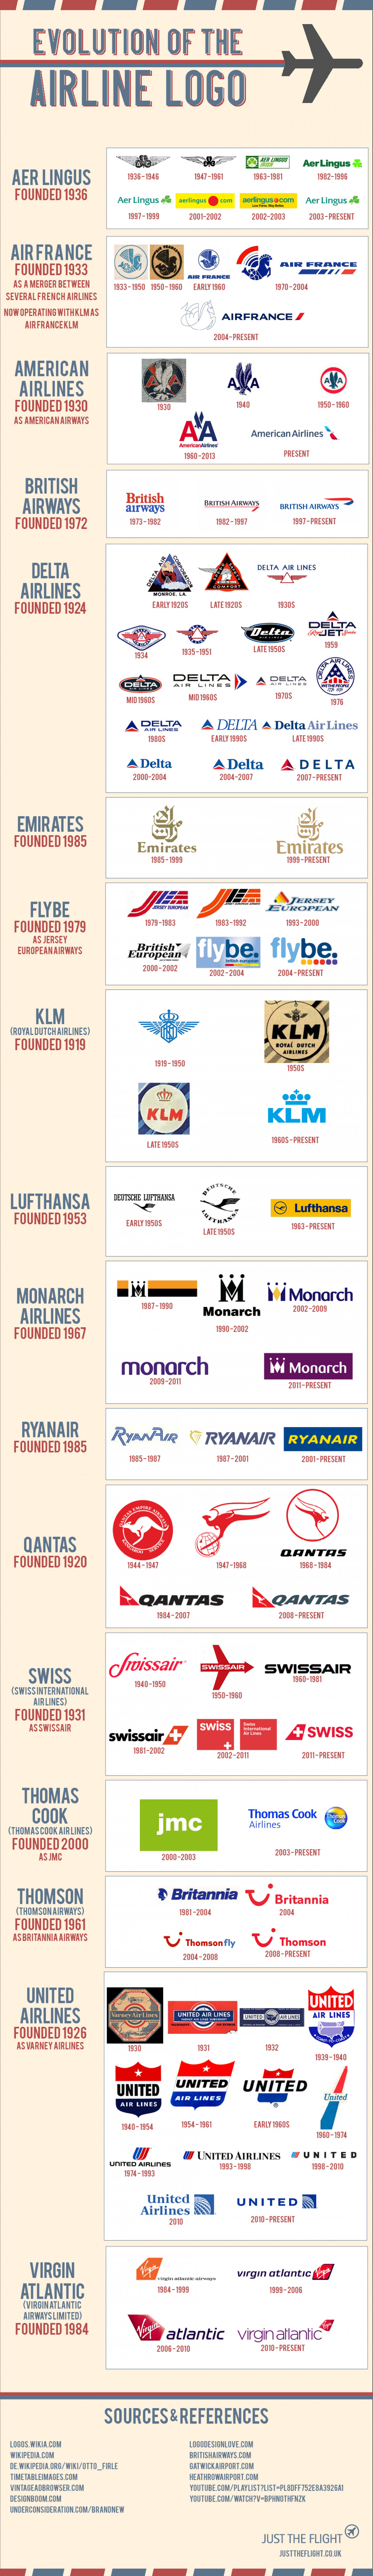 Evolution of the Airline Logo Infographic